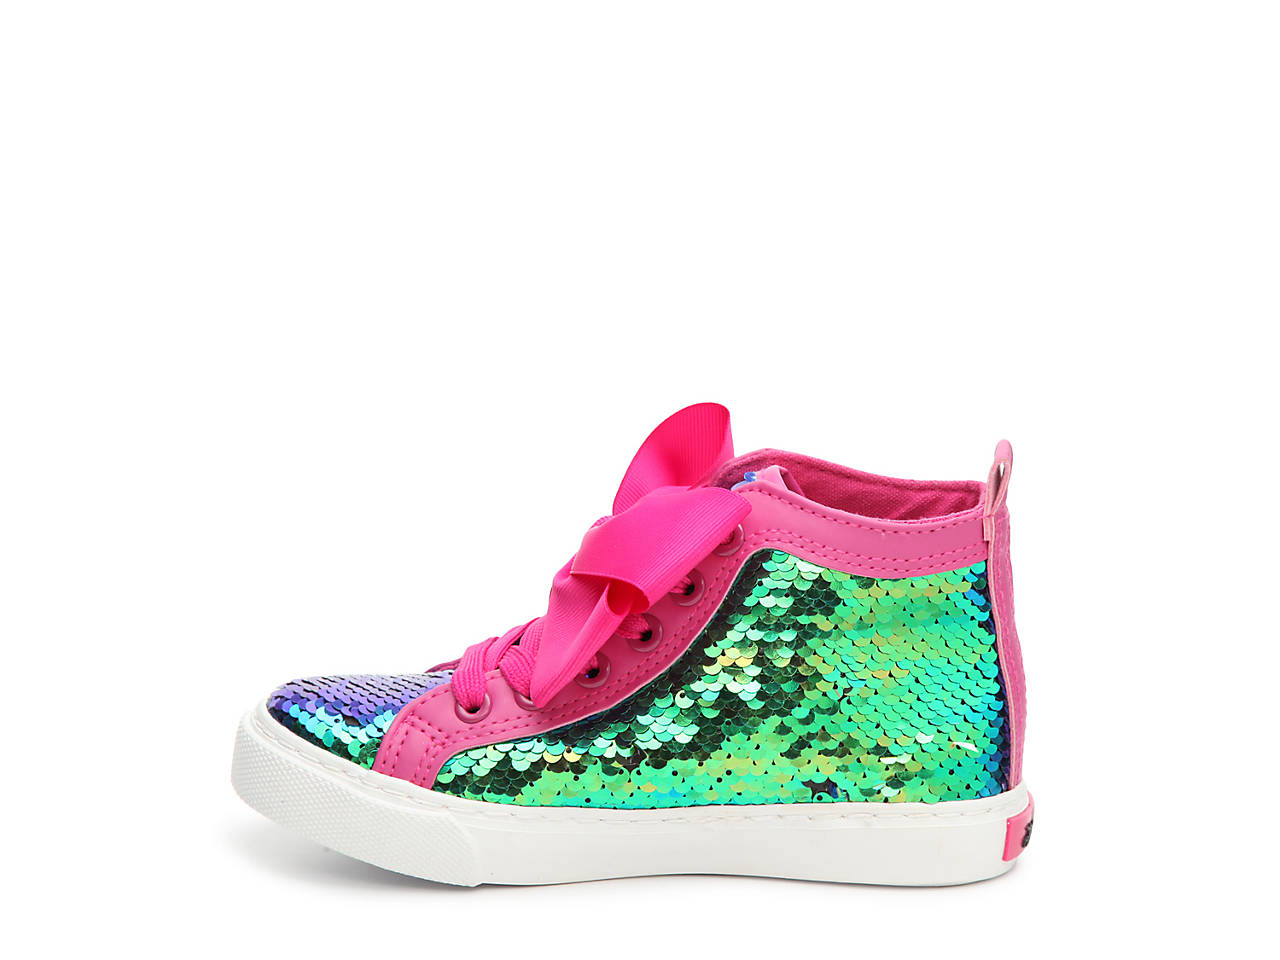 6b253aecb57 Ground Up Jojo Siwa Toddler   Youth High-Top Sneaker Kids Shoes